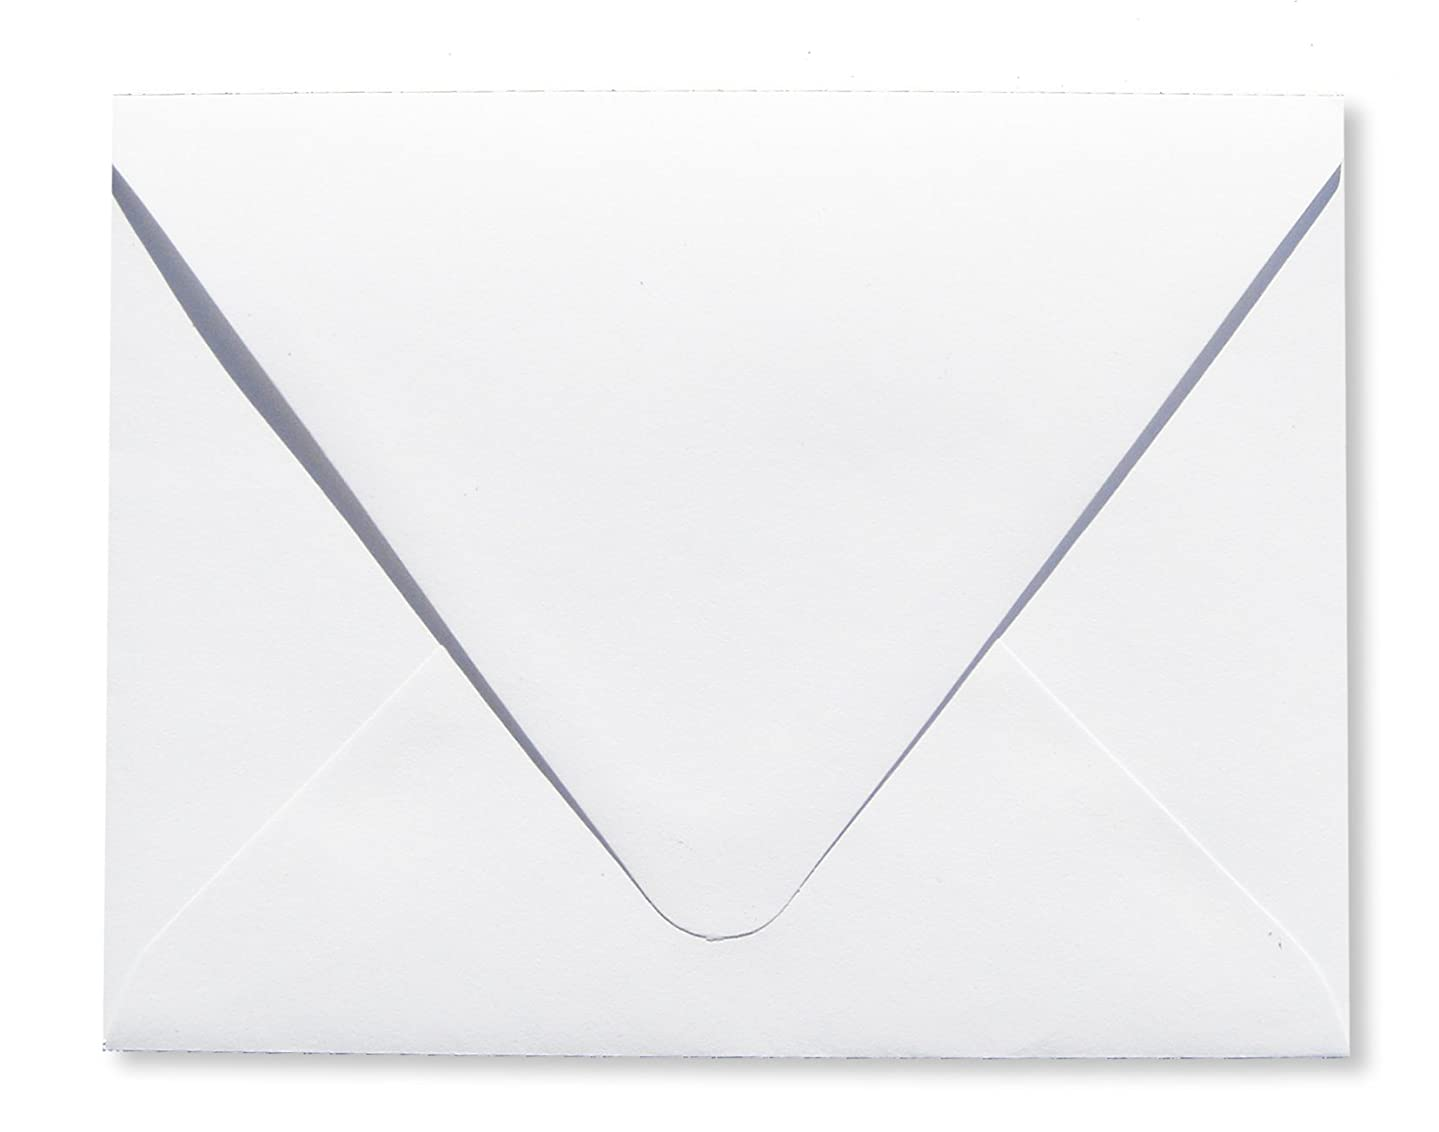 Contour Euro Flap Bright White 50 Boxed 70lb A7 Envelopes (5 1/4 x 7 1/4) Perfect for 5 x 7 Invitations, Announcements, Weddings by The Envelope Gallery